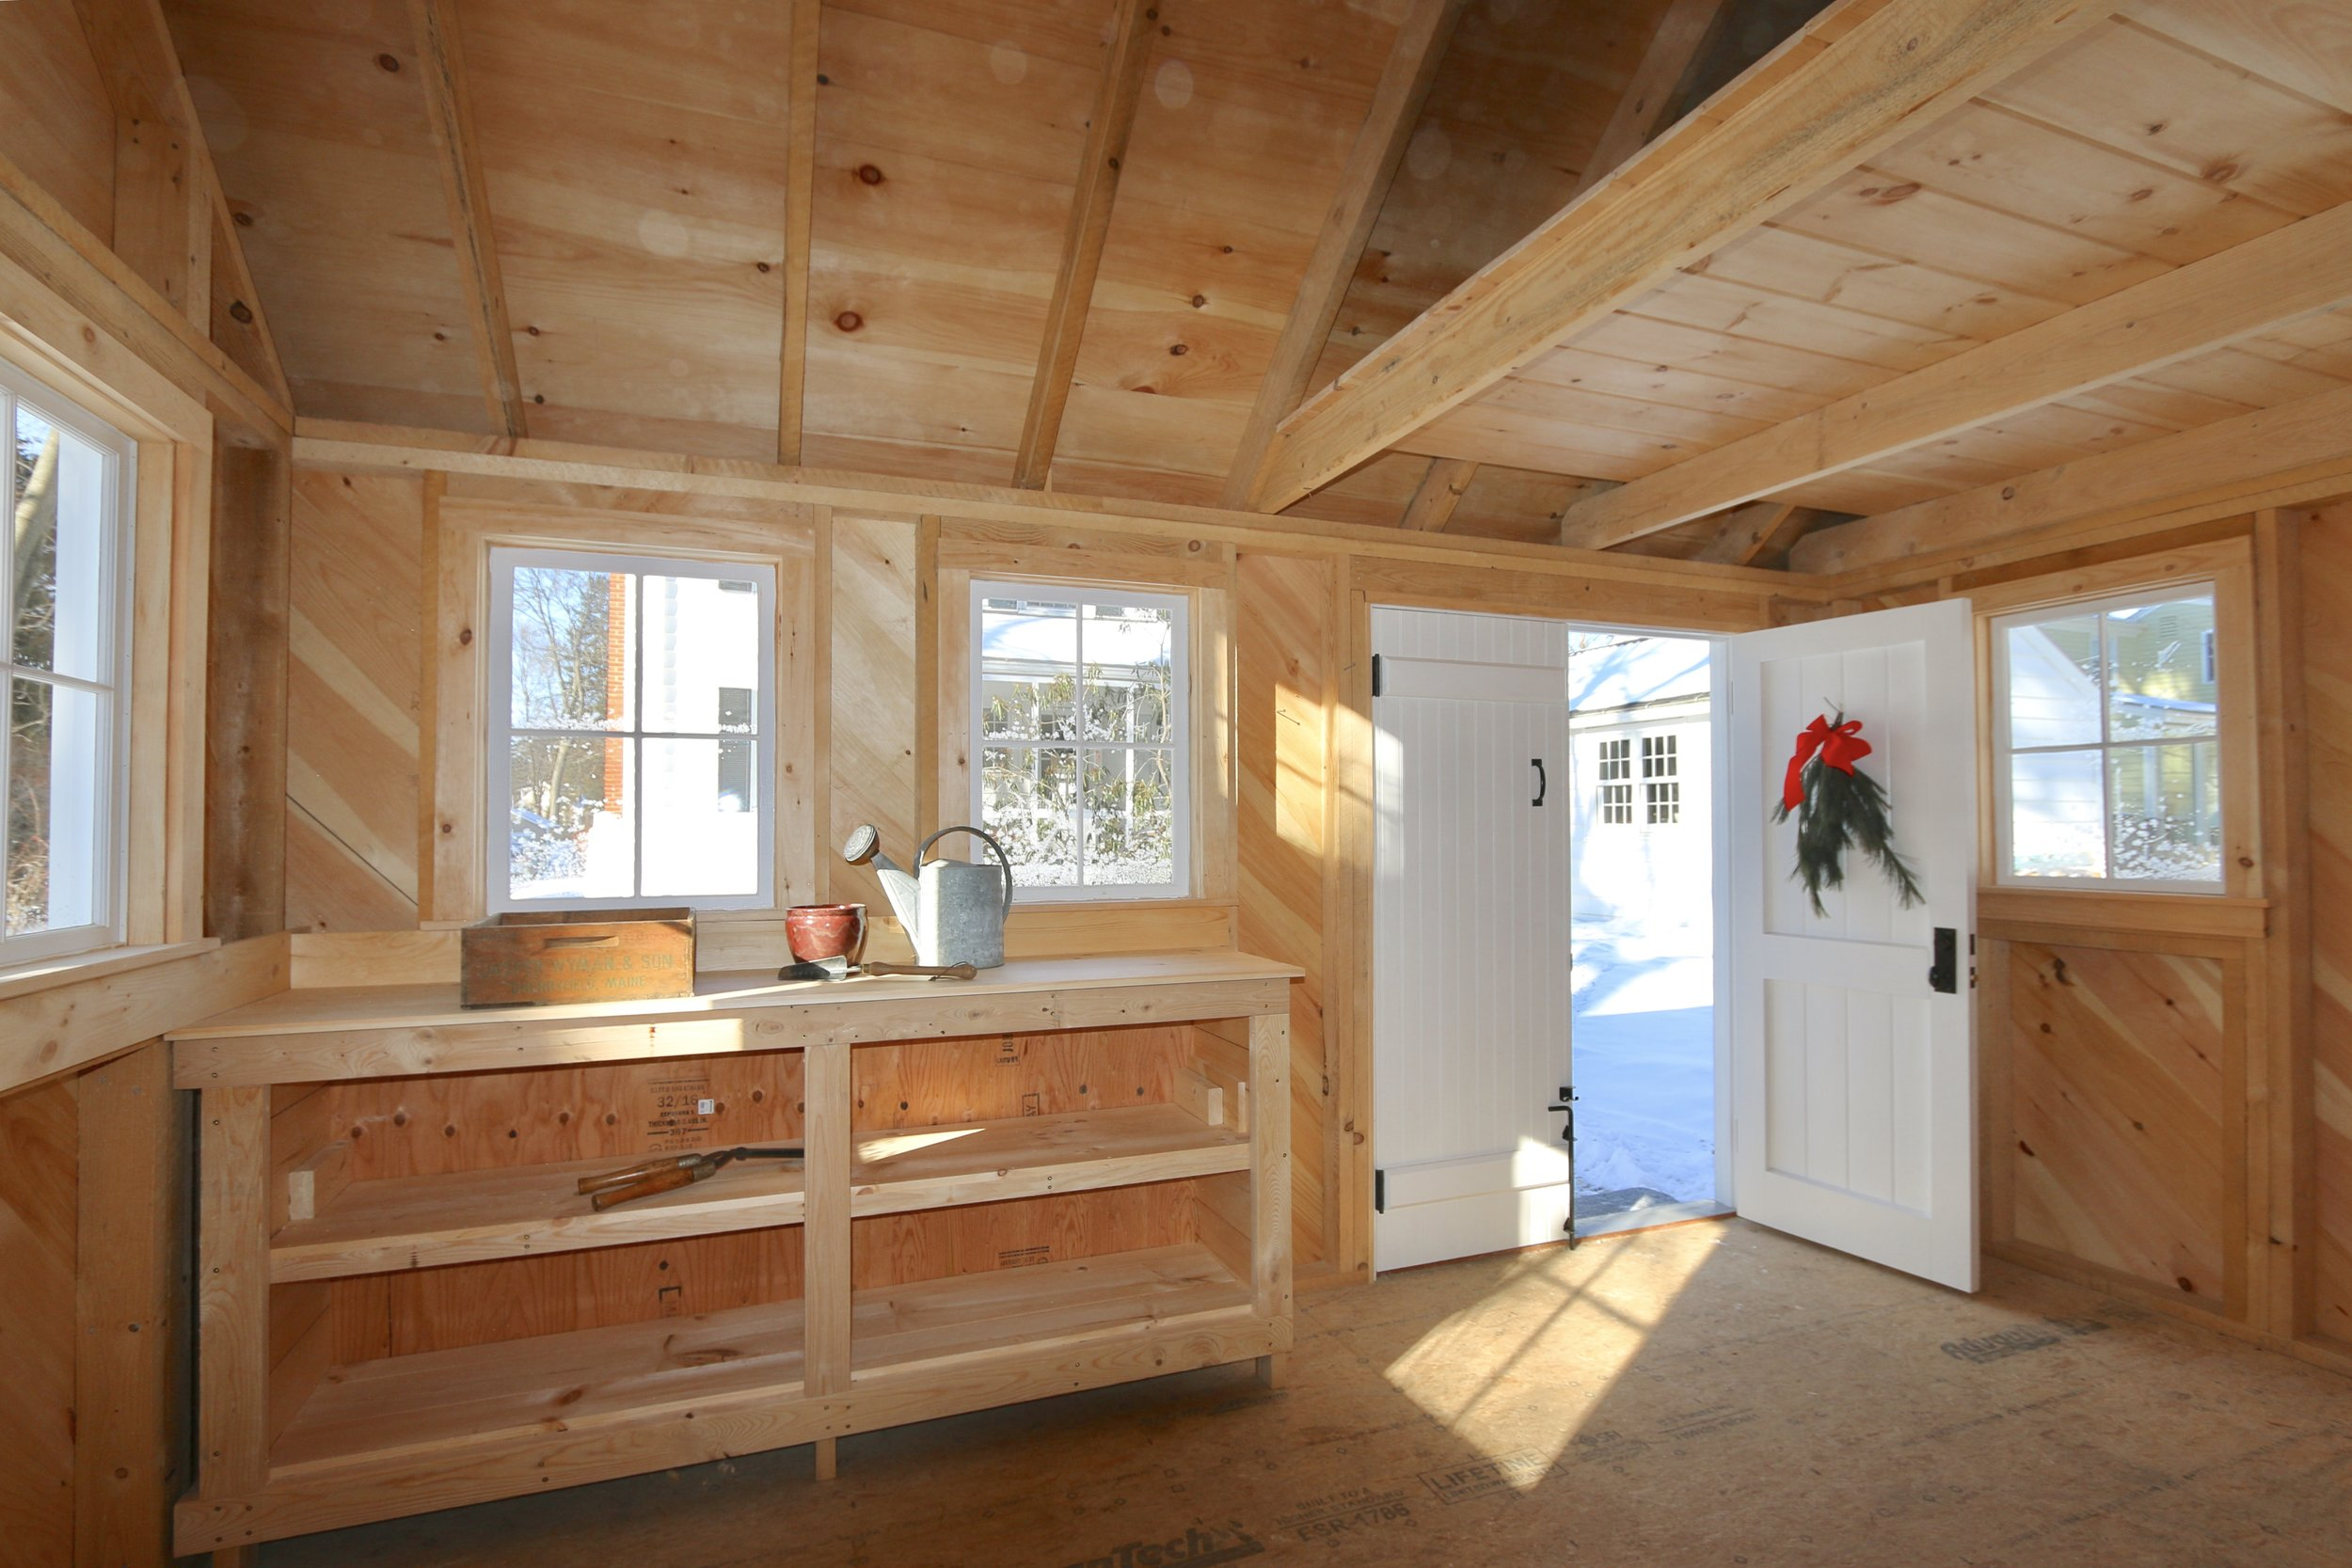 I nterior of New Garden Shed built with Rough Sawn Lumber to resemble typical outbuildings of days gone buy. Rough Sawn Lumber is 25% larger in dimension than todays'store bought lumber. It presents a robust feeling and looks so much more substantial. Timeless!!